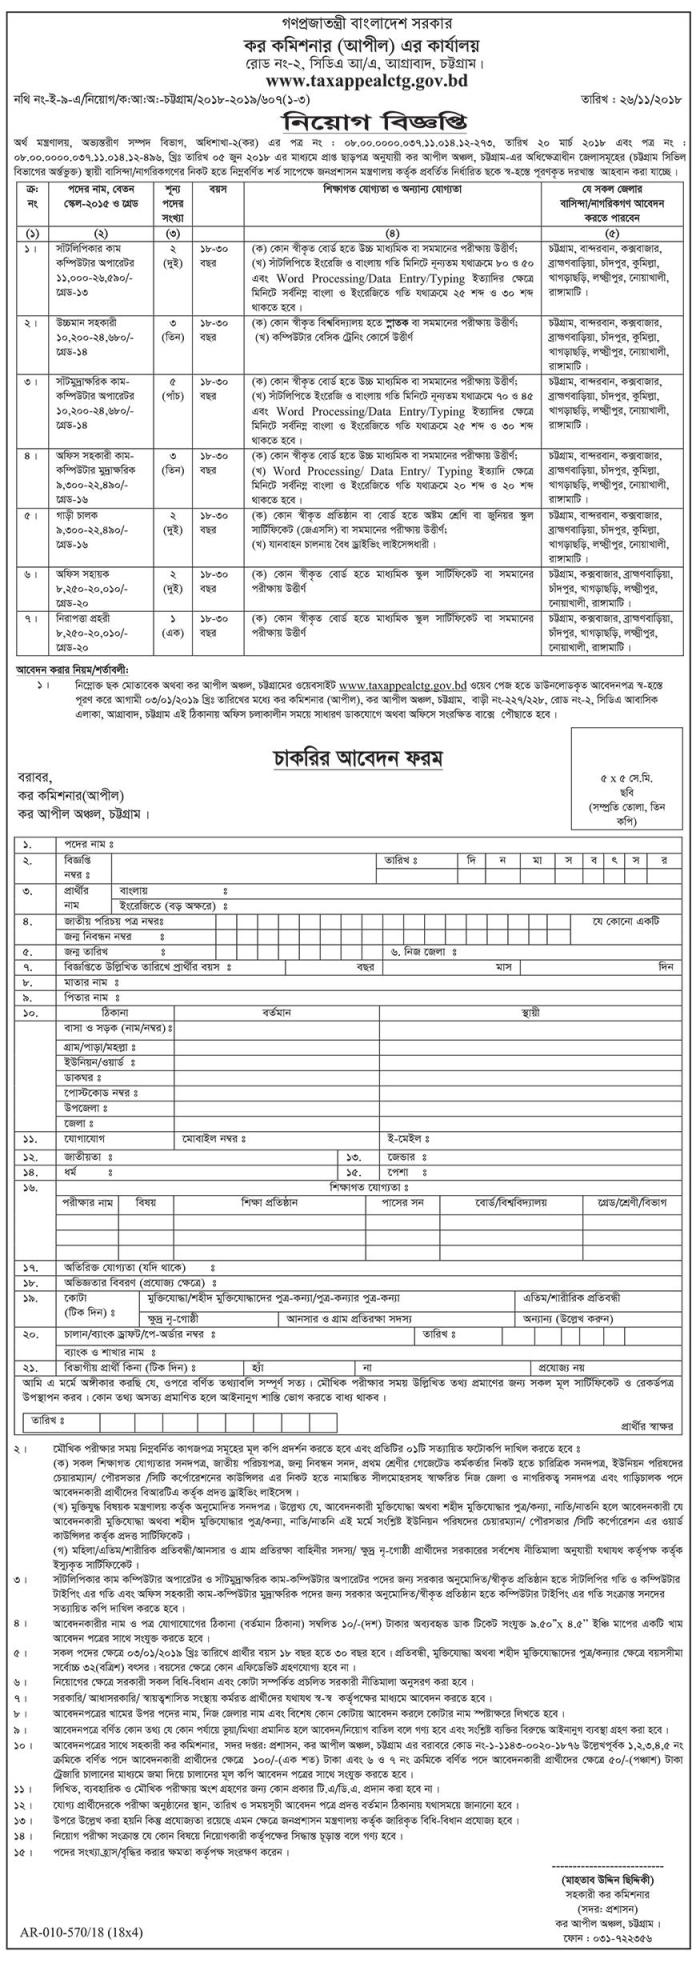 Tax Commission Job Circular